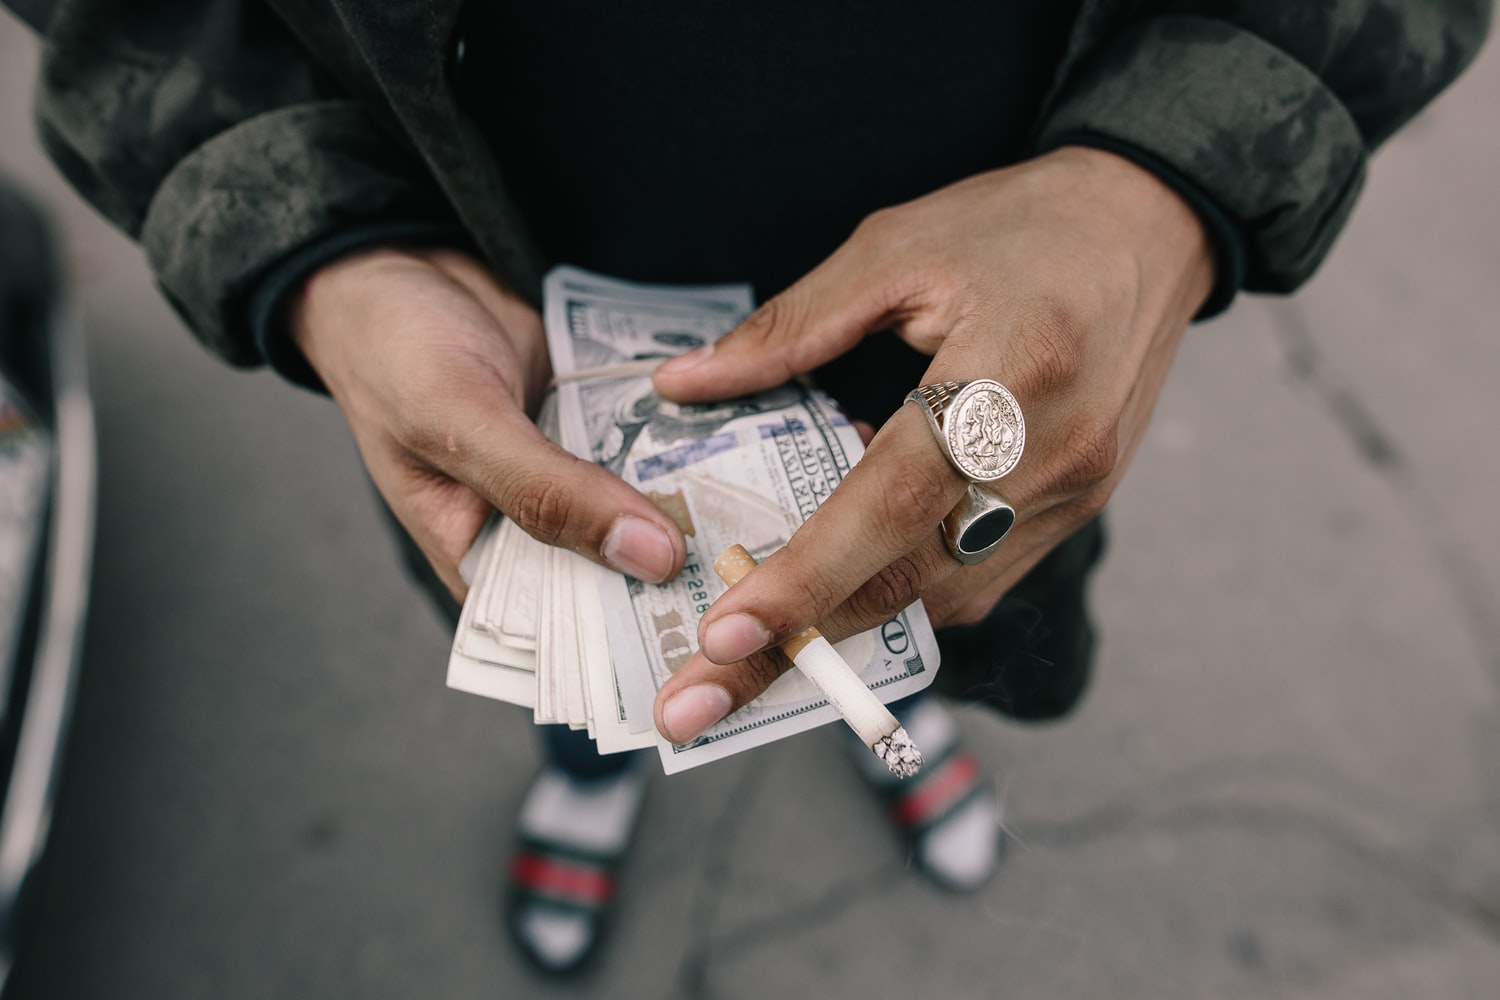 Drug addict holding cash and cigarette in hand